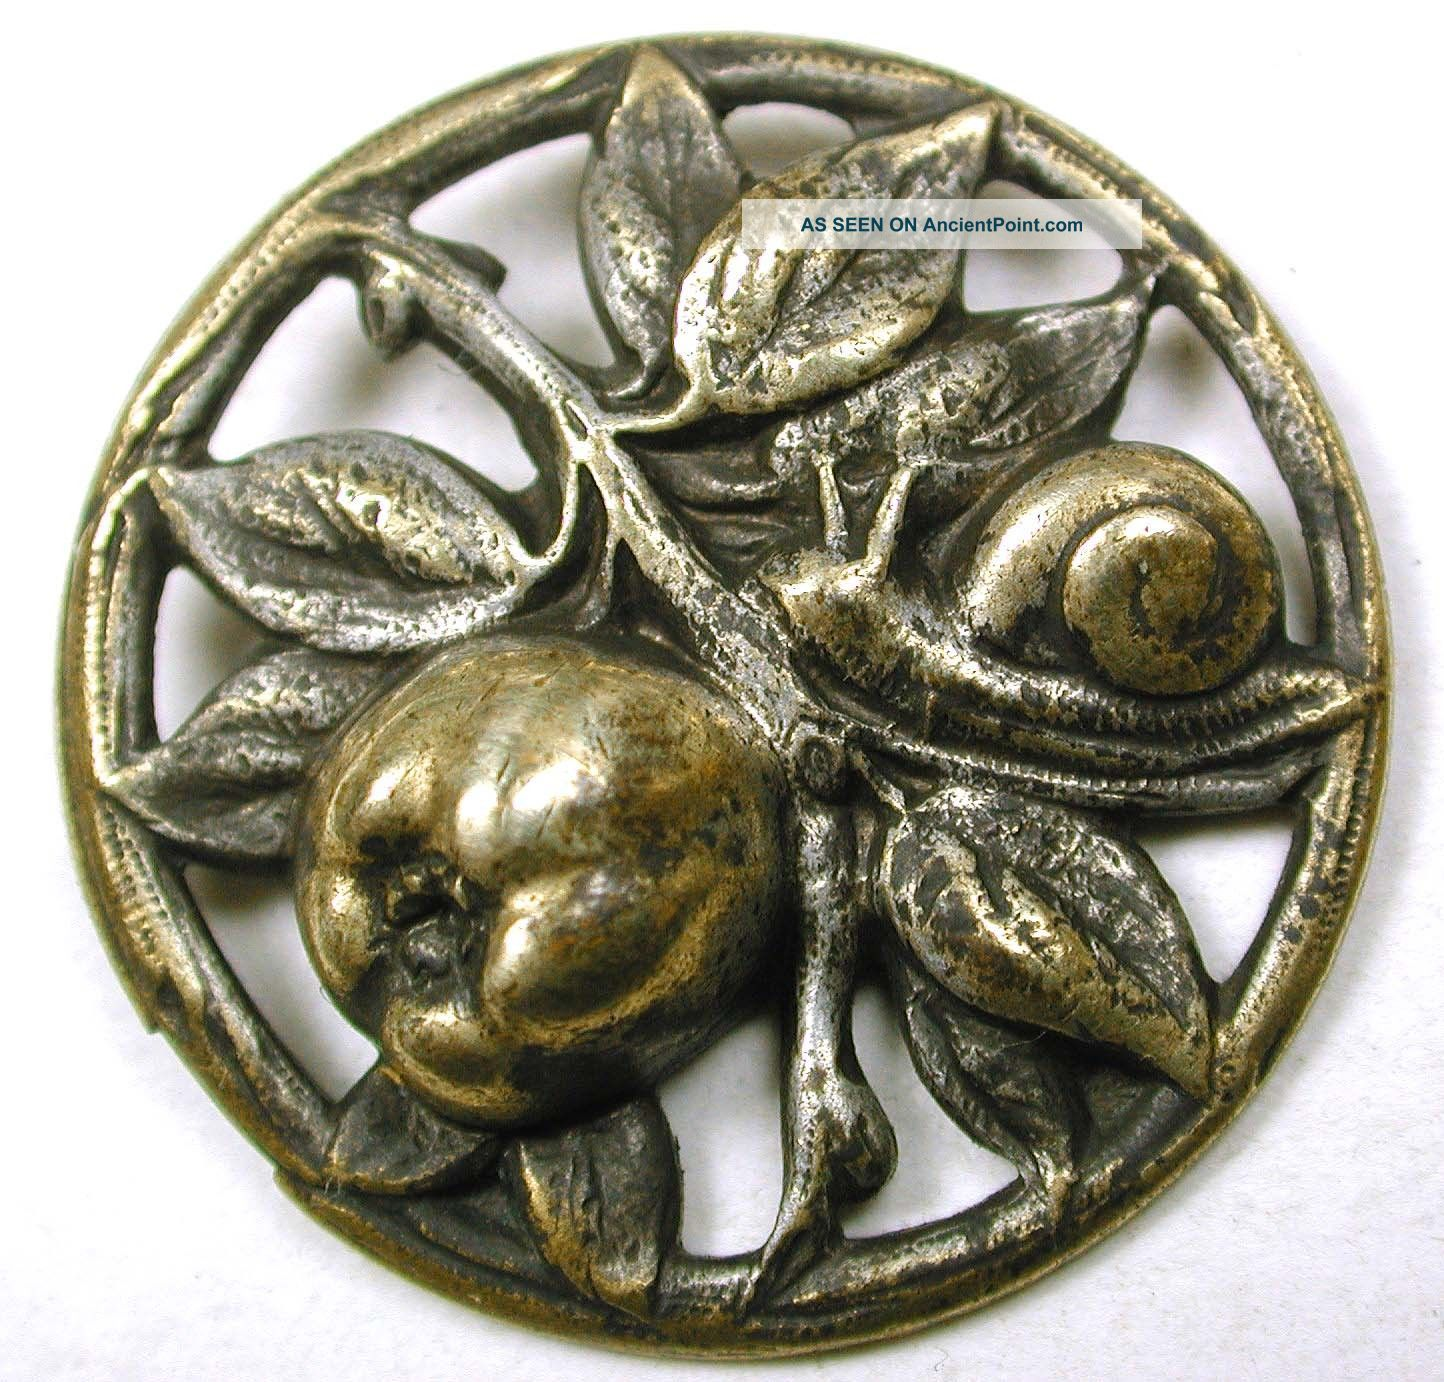 Antique Pierced Brass Button Snail & Fig Fruit Design - 1 & 1/16